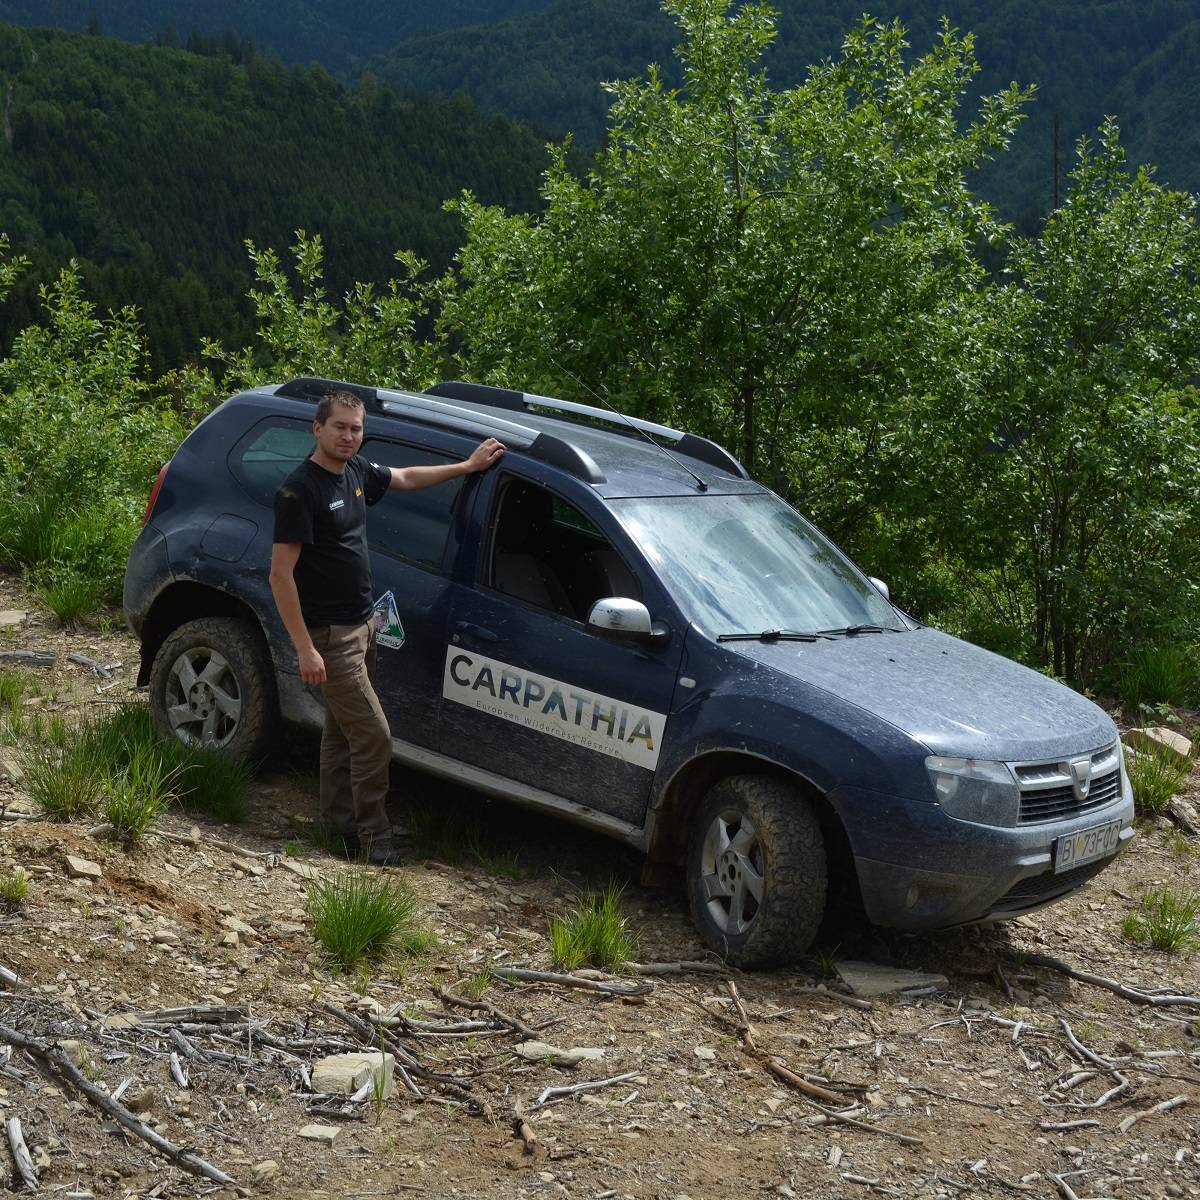 A forest ranger stands next to his car in nature